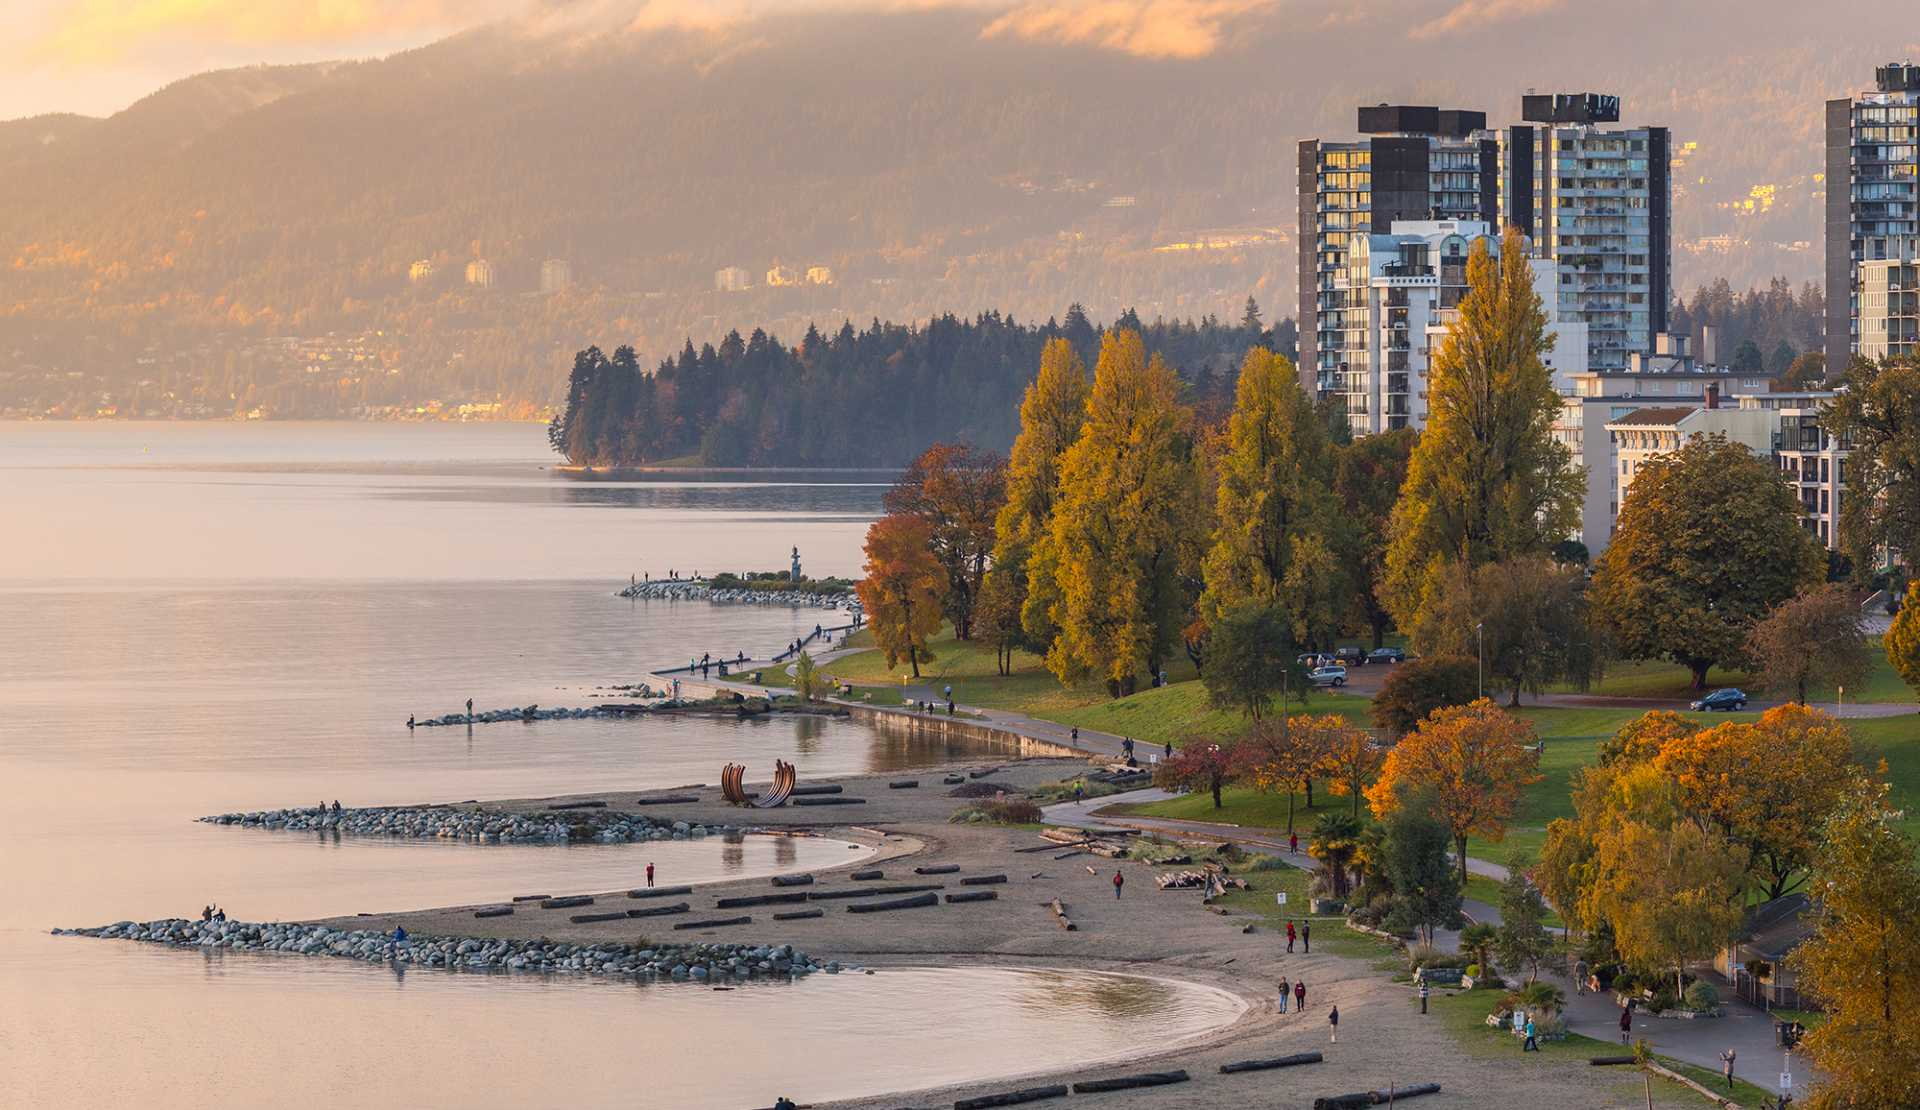 Sunset Beach in the fall